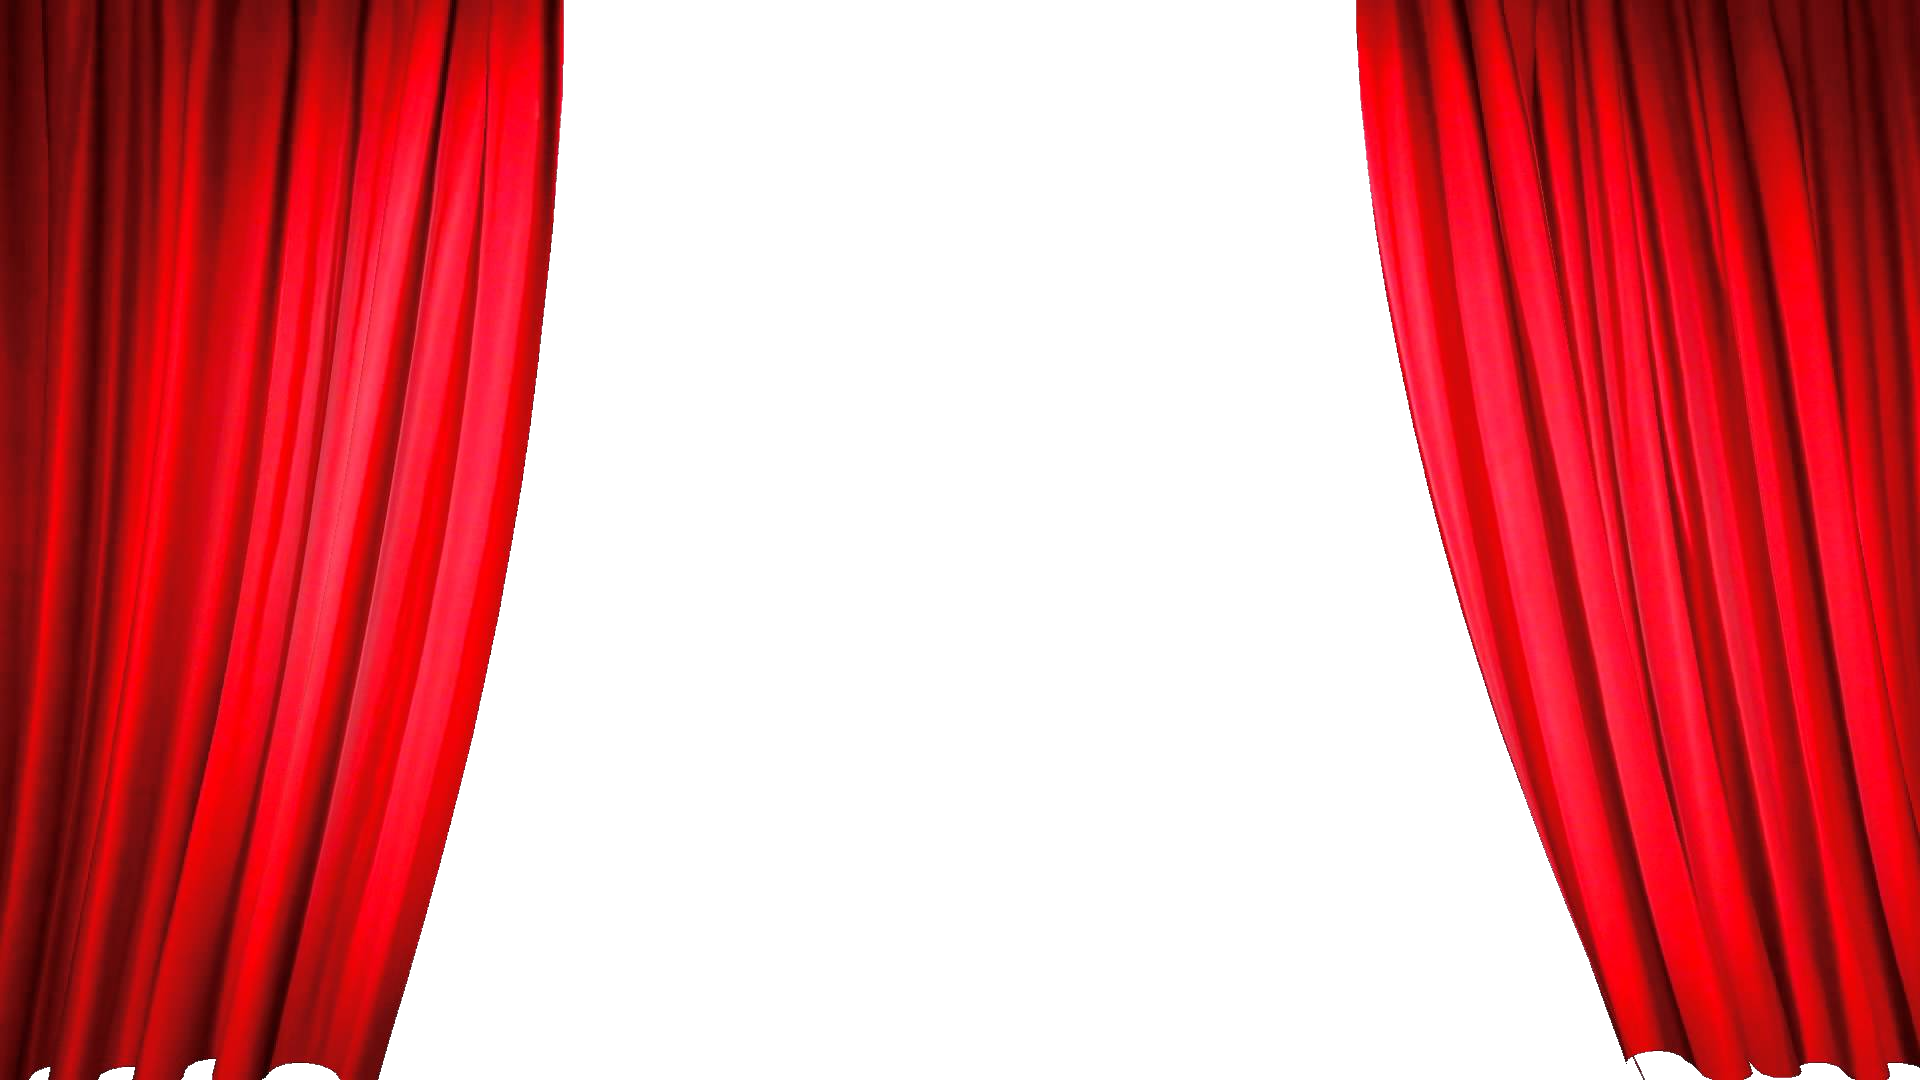 Curtain press button free. Curtains clipart homestuck